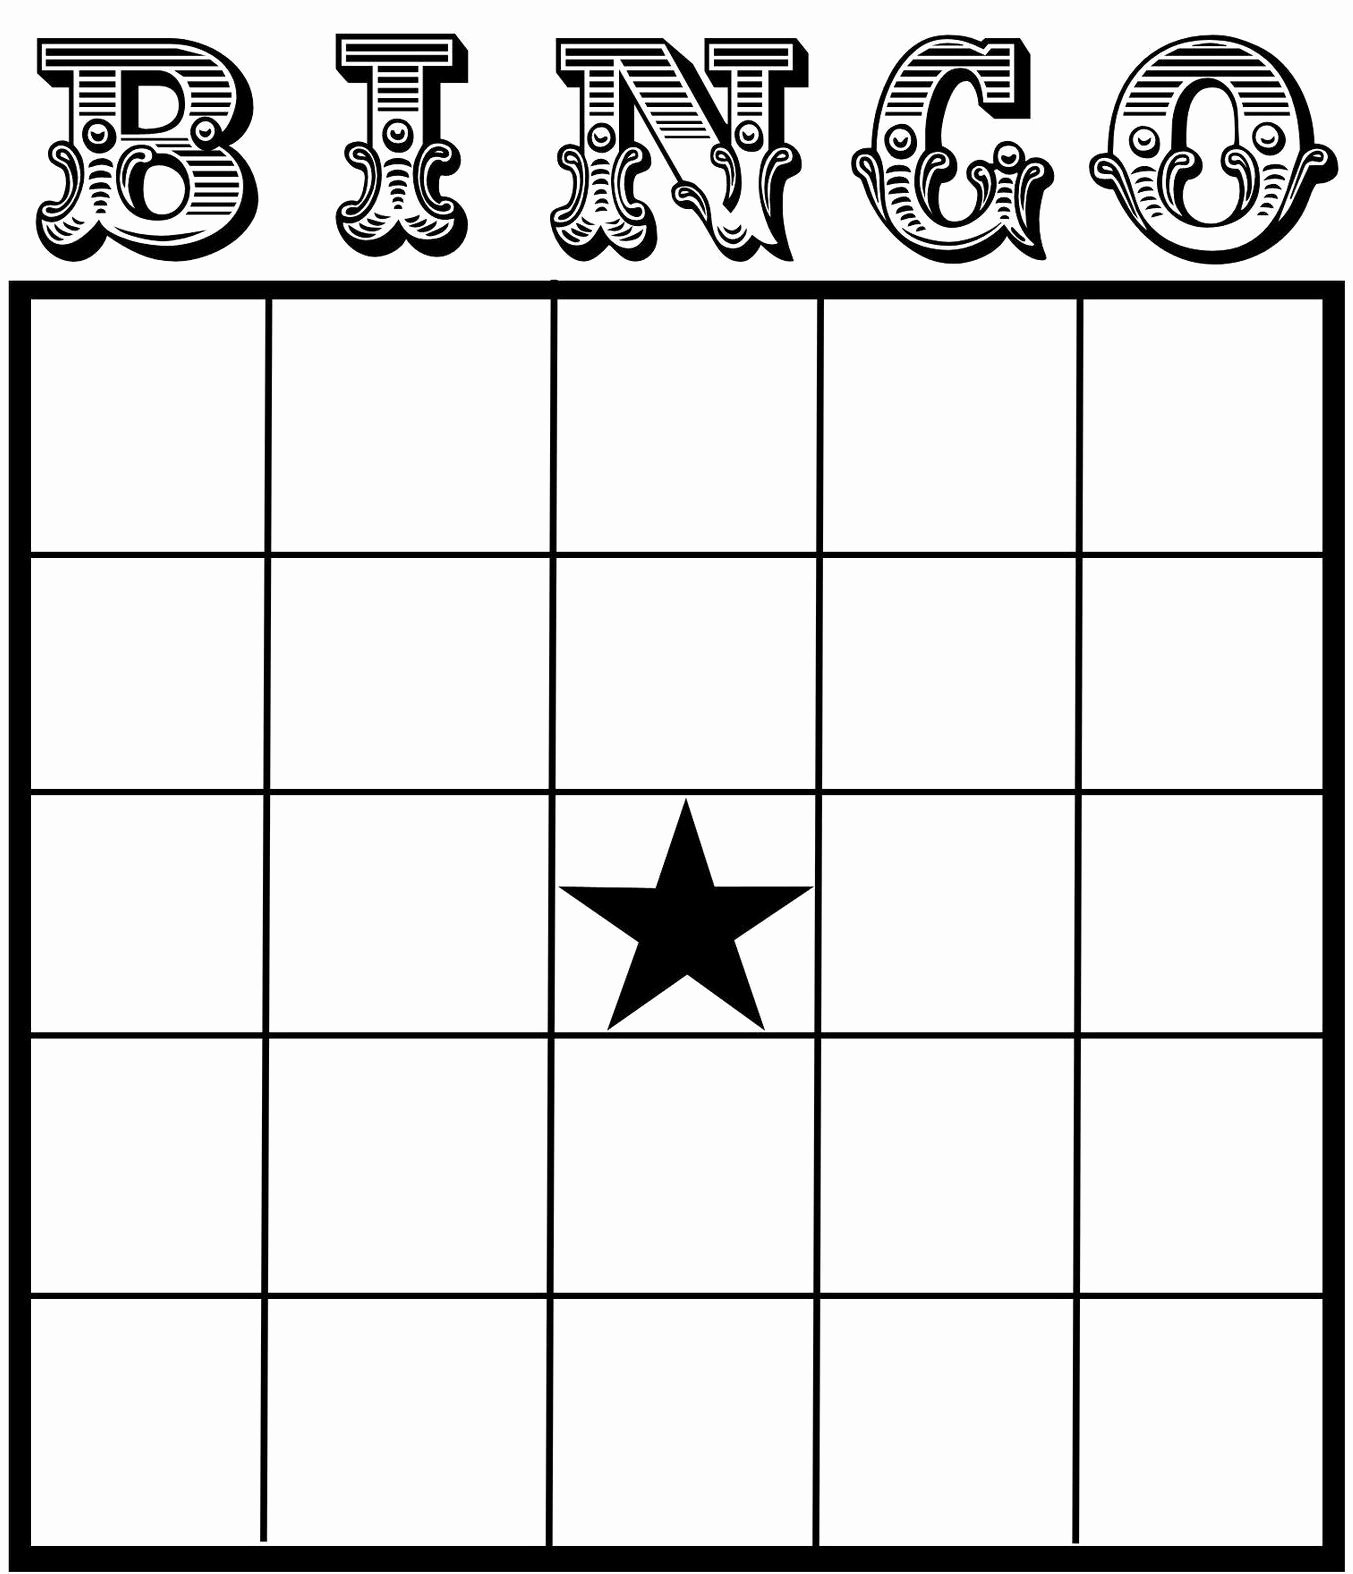 Blank Printable Bingo Cards Awesome Free Printable Bingo Card Template Set Your Plan & Tasks